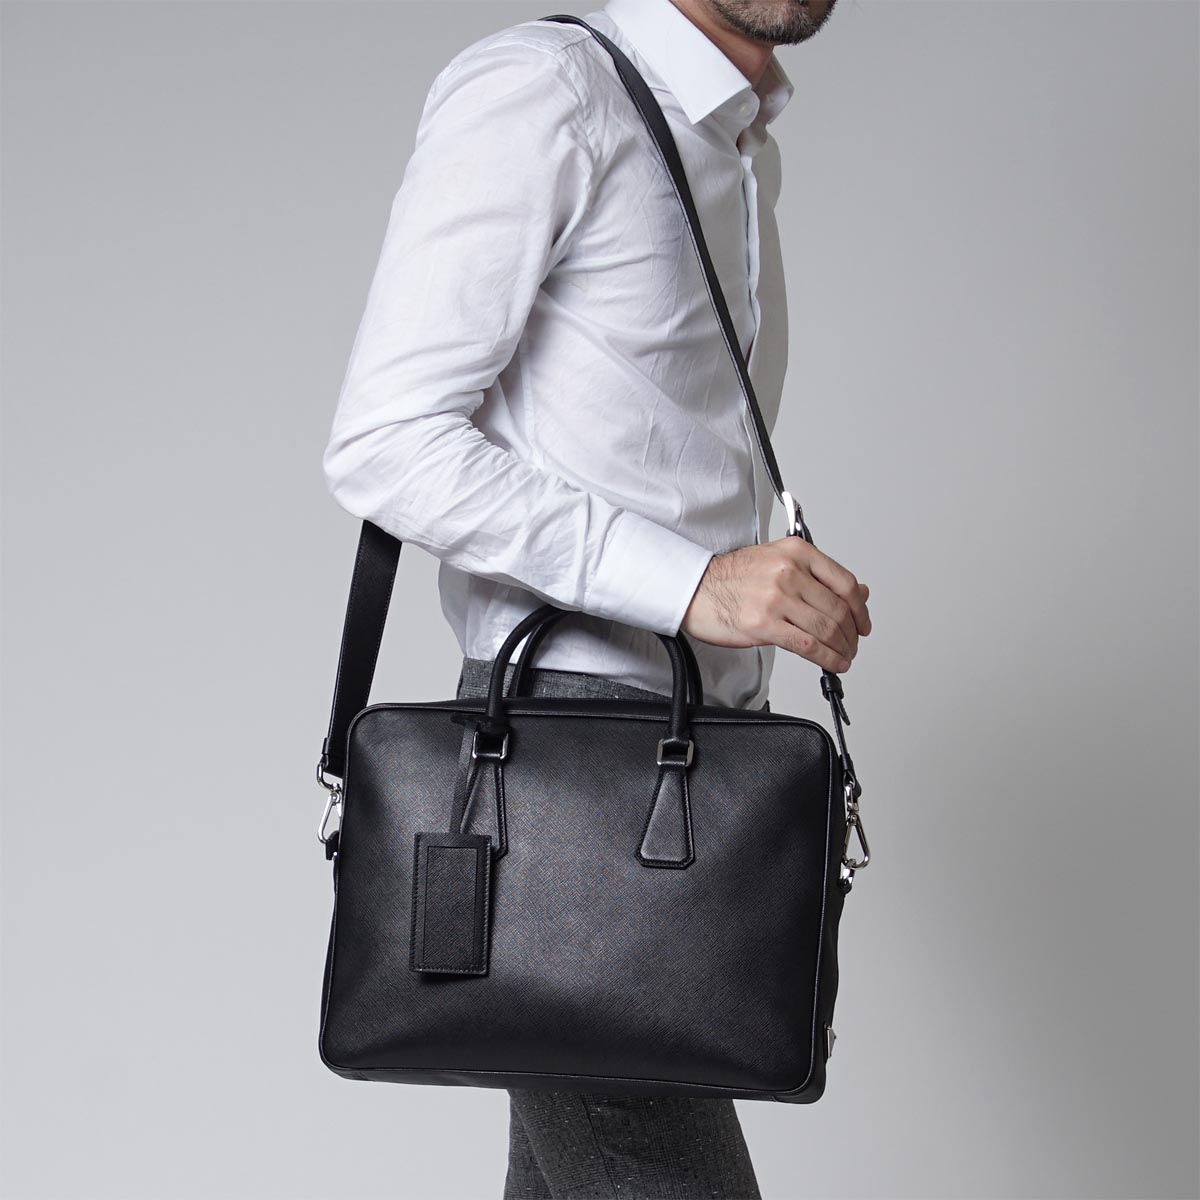 Prada Mens Briefcase Sale | Prada Briefcase | Prada Messenger Bag for Men